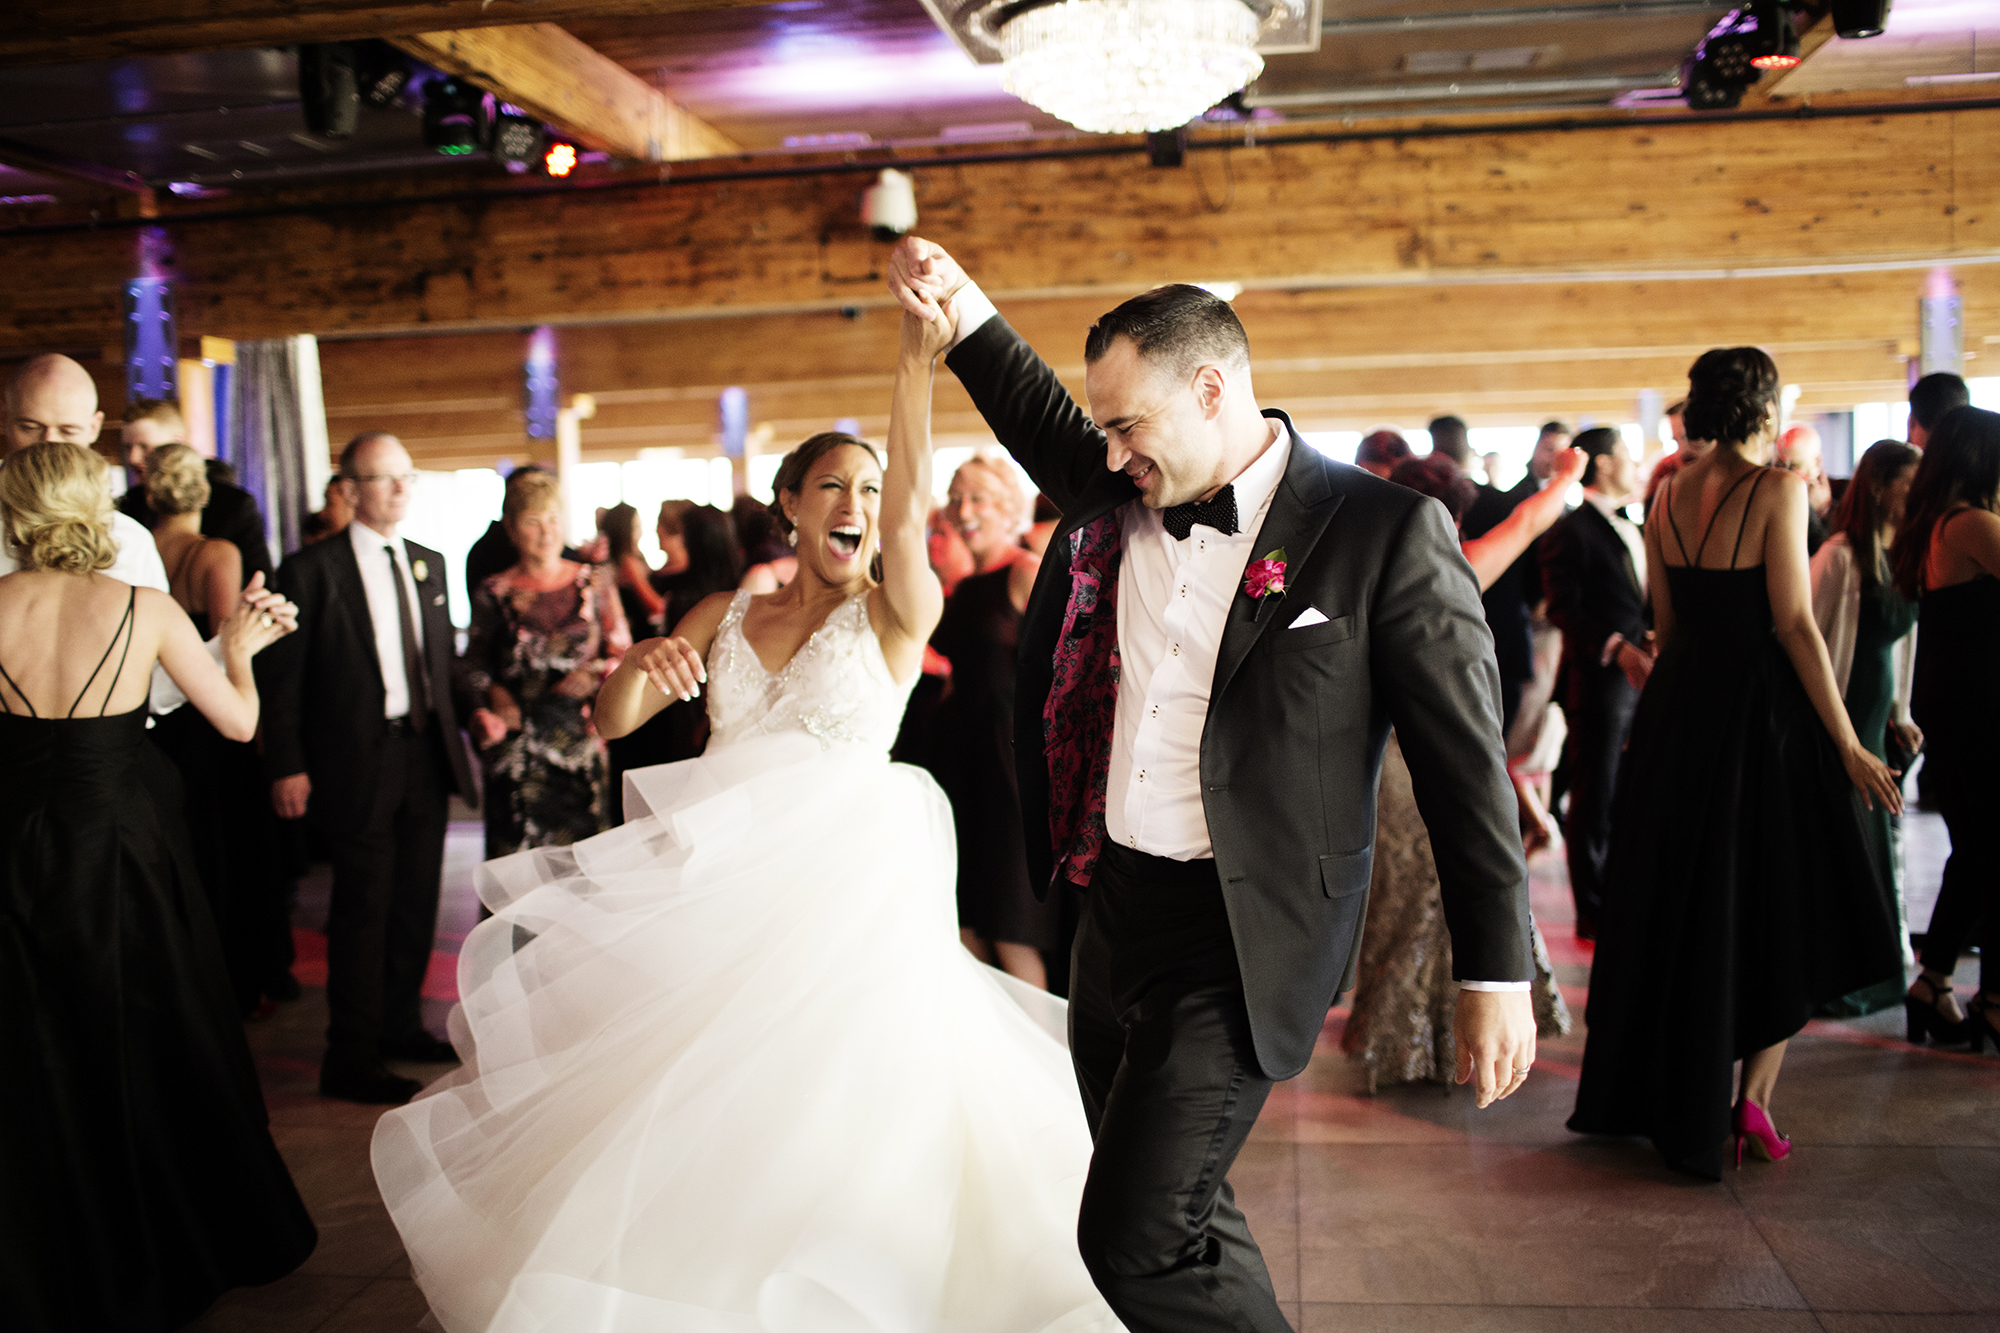 A'bulae Event Center Wedding Photos | Photography by Photogen Inc. | Eliesa Johnson | Based in Minneapolis, Minnesota